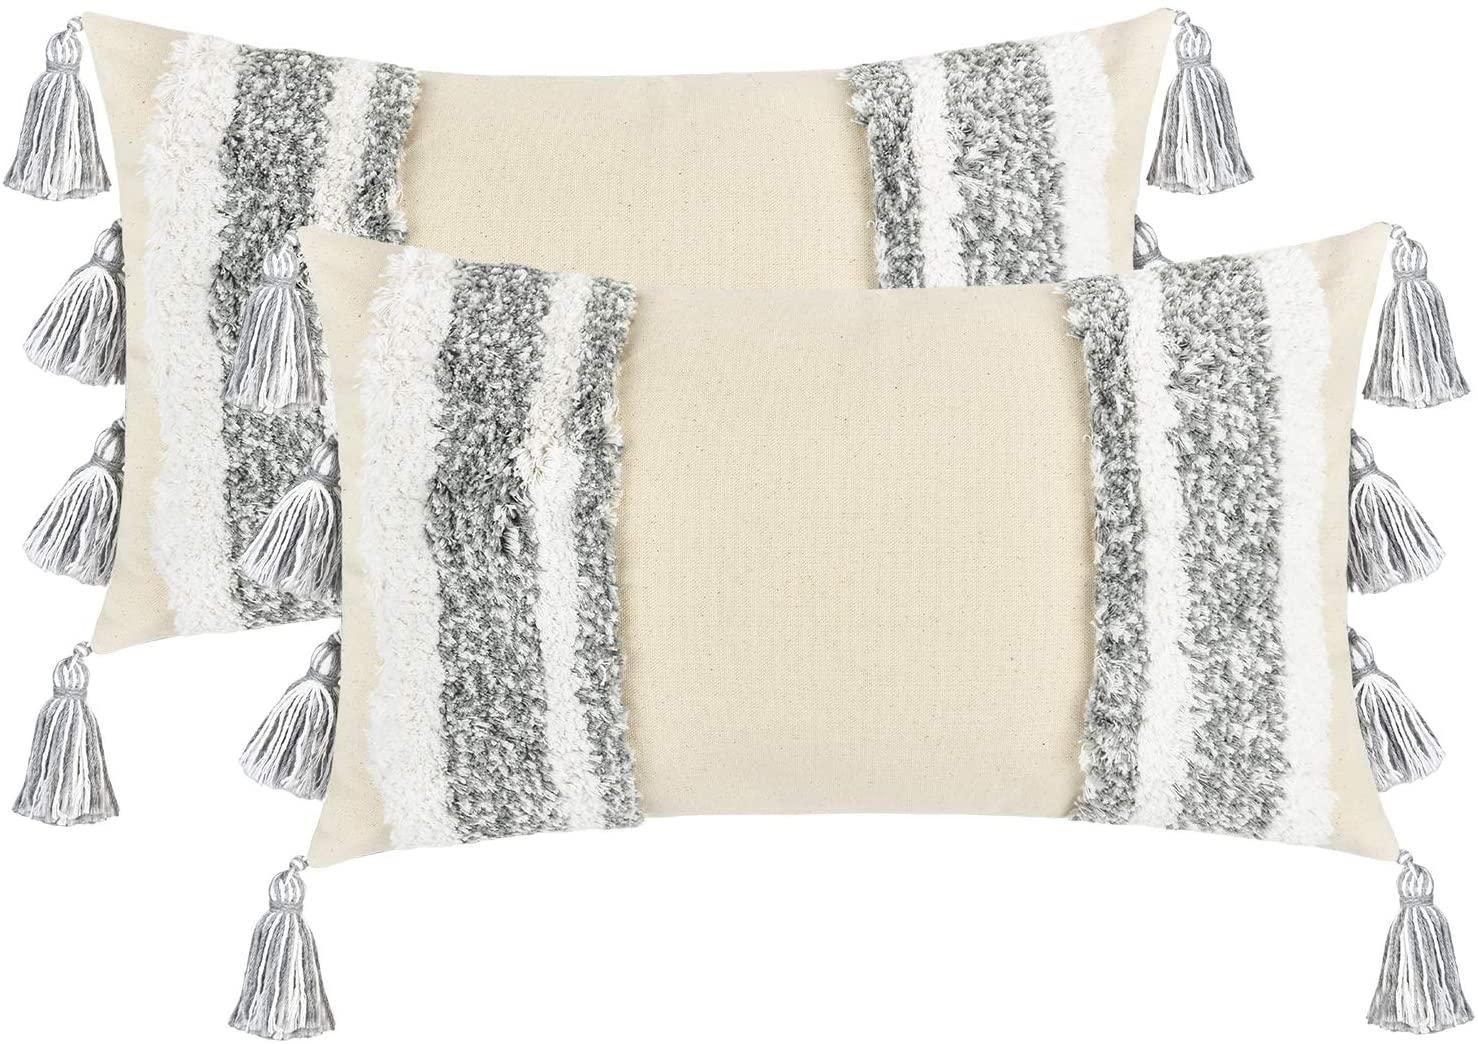 Boho Woven Tufted Throw Pillow Cover, Tufted Decorative Pillowcase with Tassels, 2 Pack Lumbar Pillow Cover Super Soft Cushion Cover for Sofa Couch Bedroom Car Living Room, Grey (12 X 20 Inch)